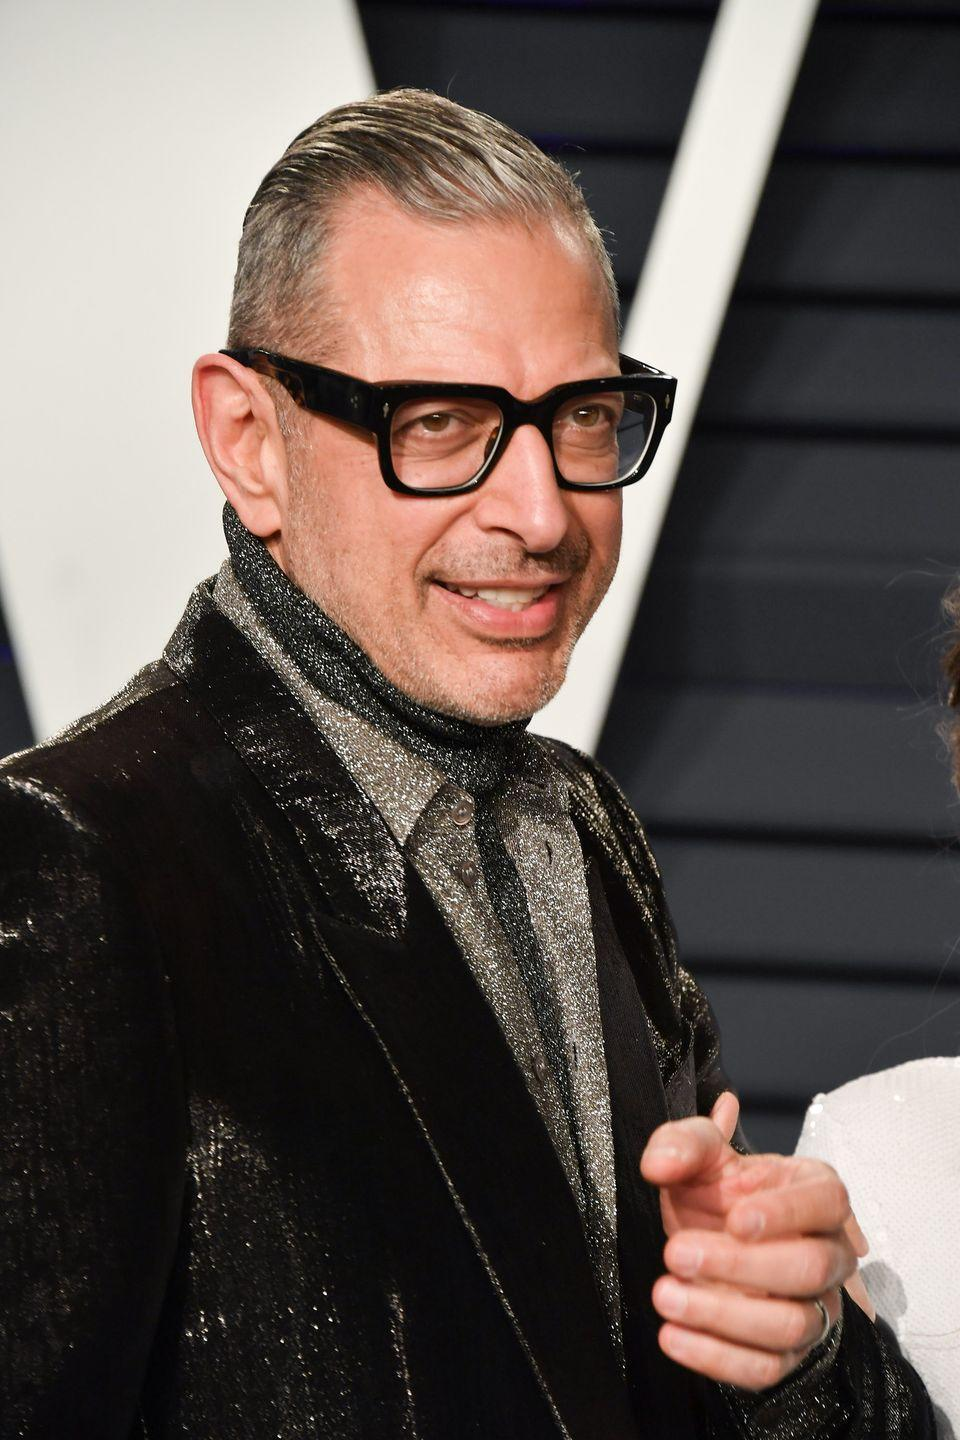 <p>Whether on an island of dinosaurs, an isle of dogs, or a planet of trash, Goldblum keeps killin' it.</p>